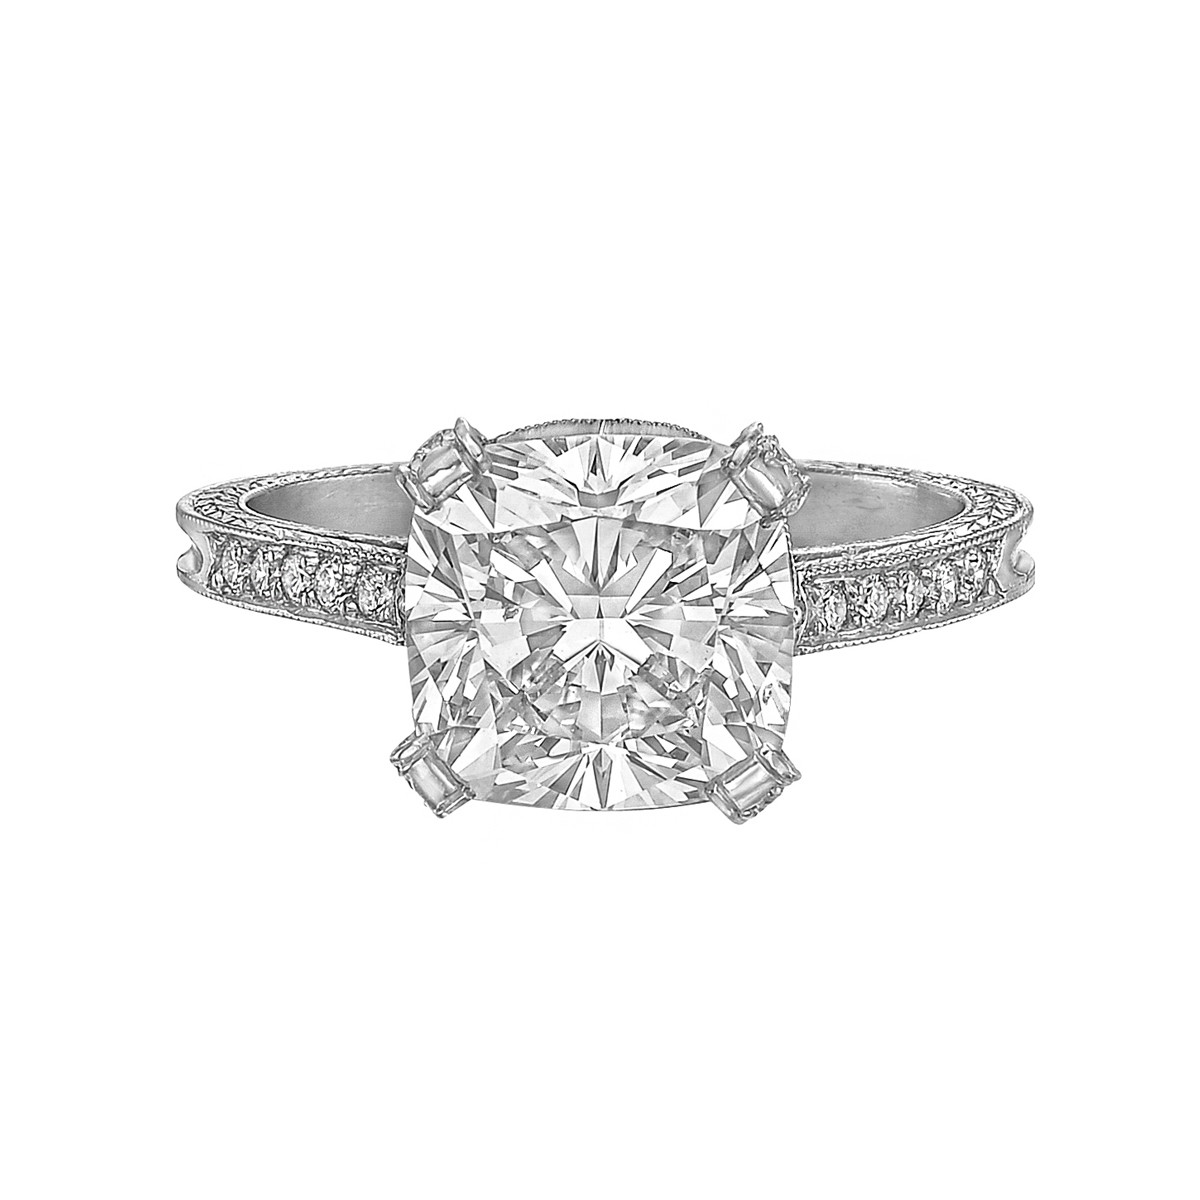 3.06ct Colorless Cushion-Cut Diamond Ring